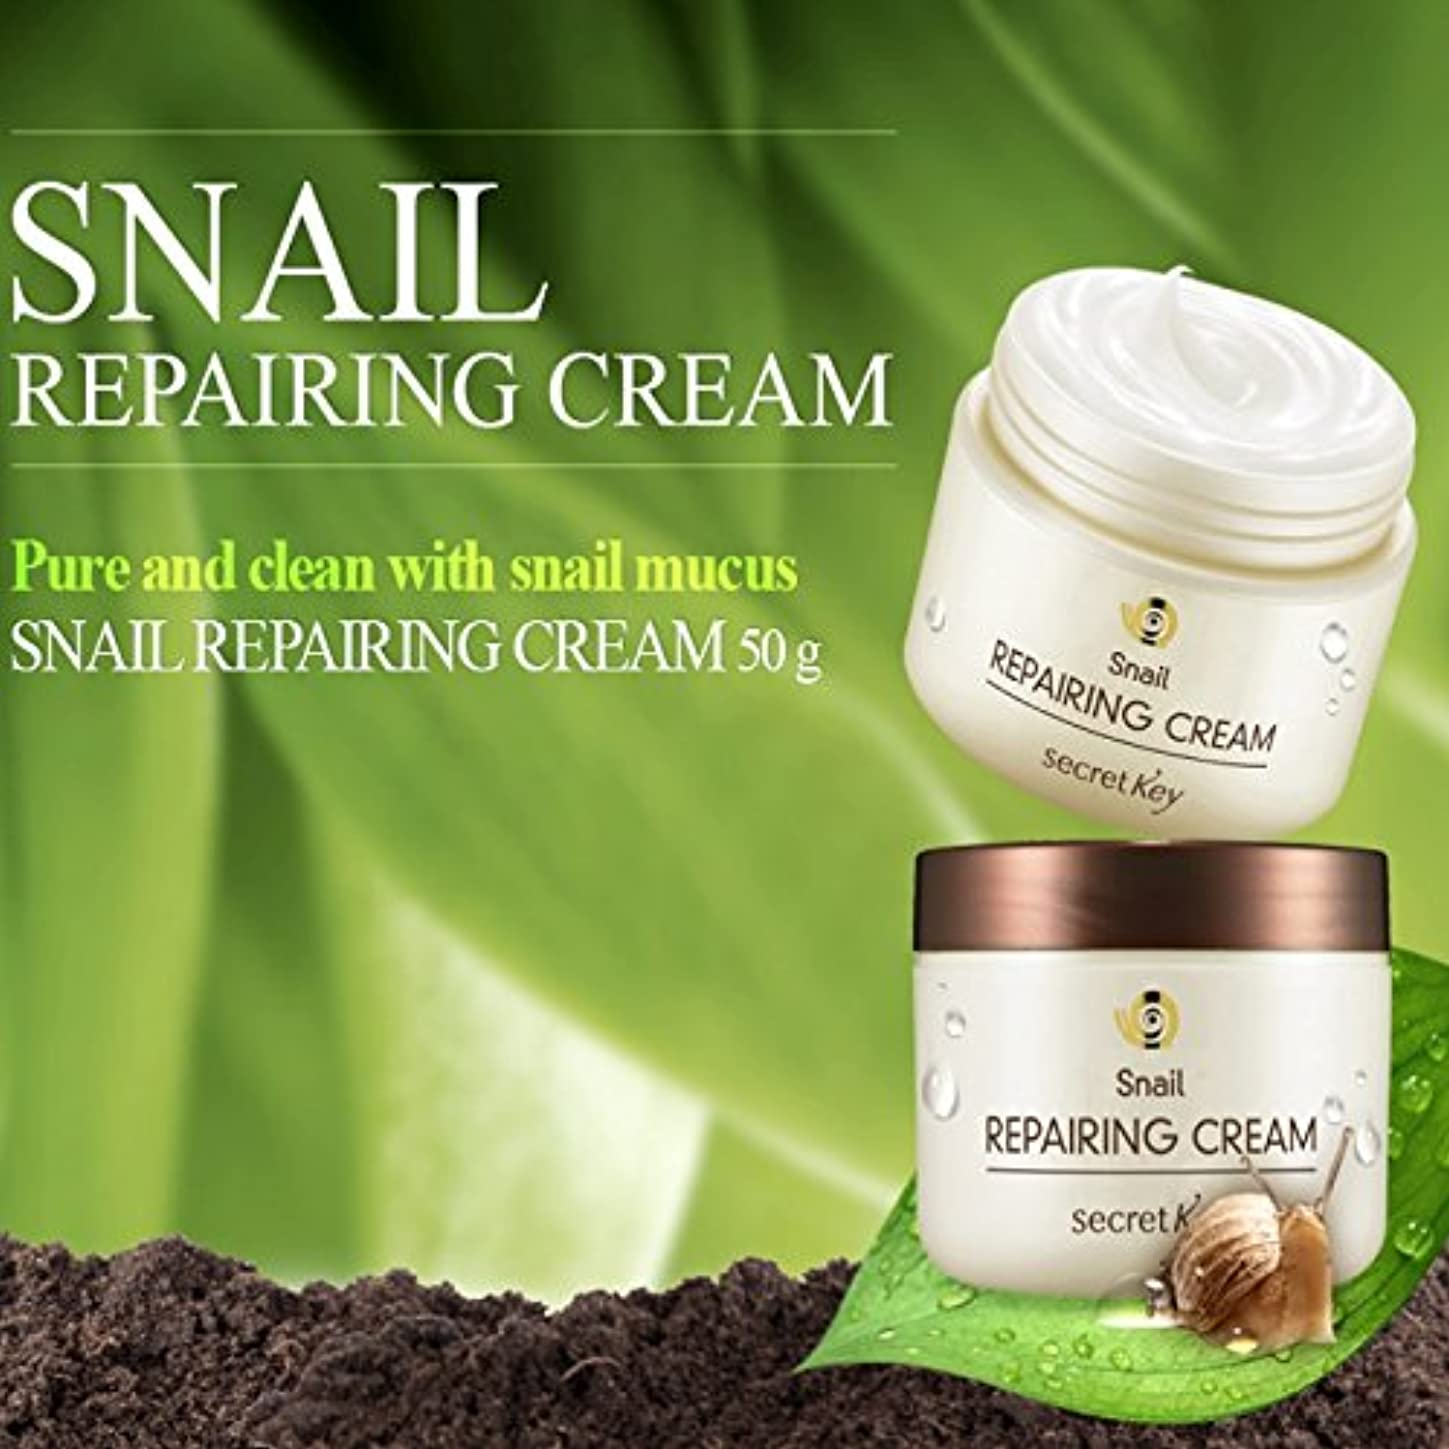 Secret Key Snail Repairing Cream Renewal 50g /シークレットキー スネイル リペアリング /100% Authentic direct from Korea/w 2 Gift...